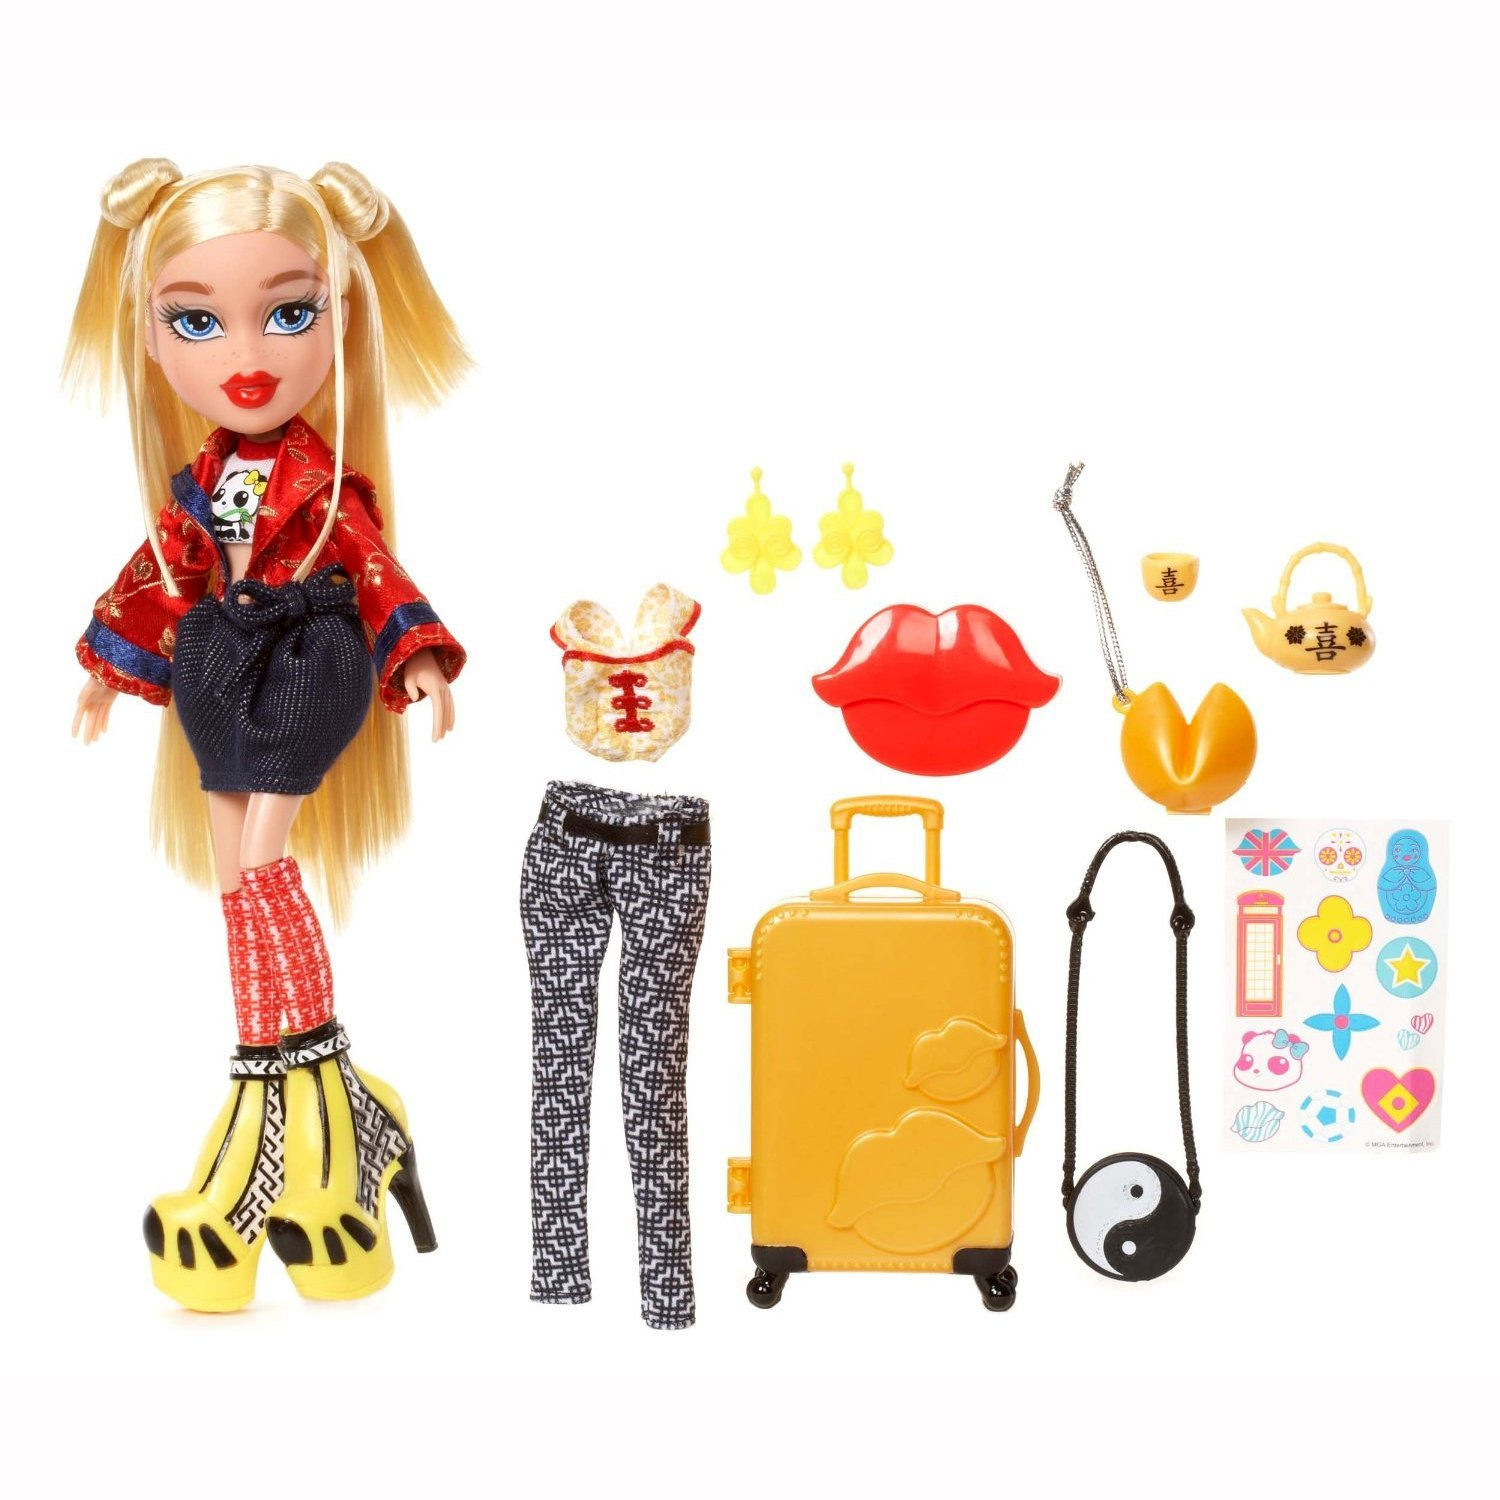 MGA Year 2015 Bratz Study Abroad Series 10 Inch Doll Set - CLOE to China with 2